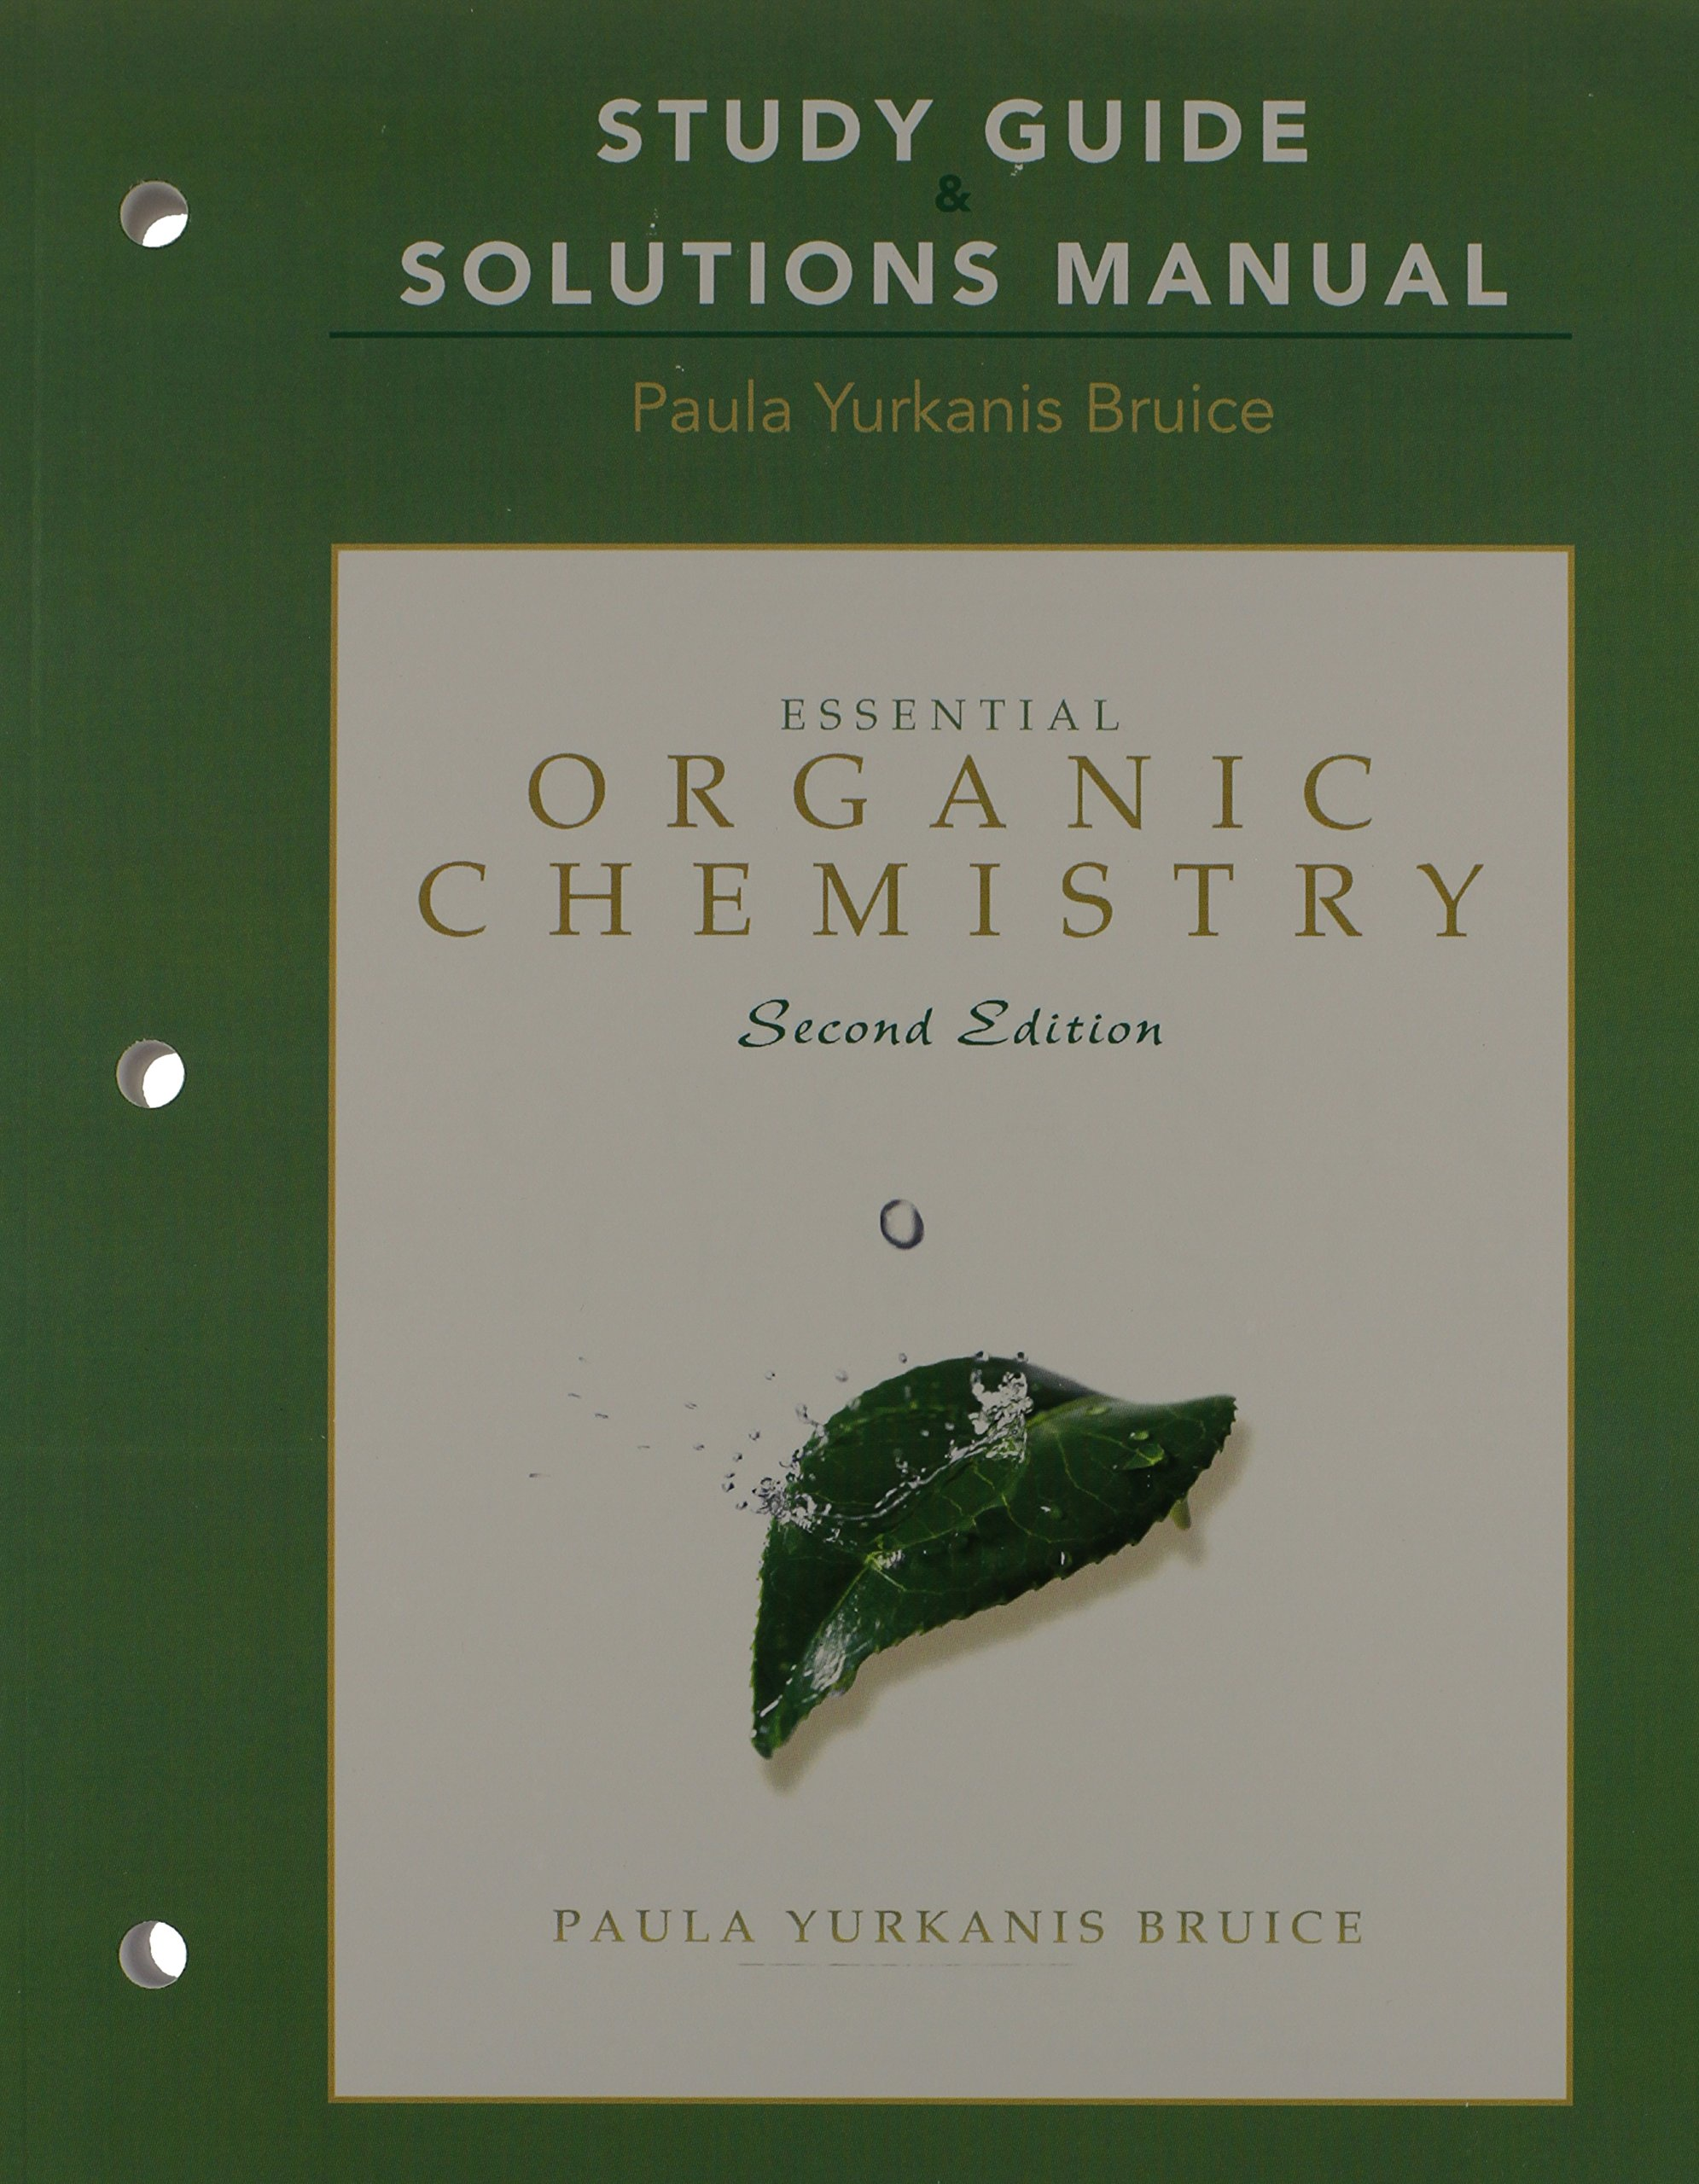 Essential Organic Chemistry with Study Guide and Solutions Manual: Paula Y.  Bruice: 9780321633859: Books - Amazon.ca